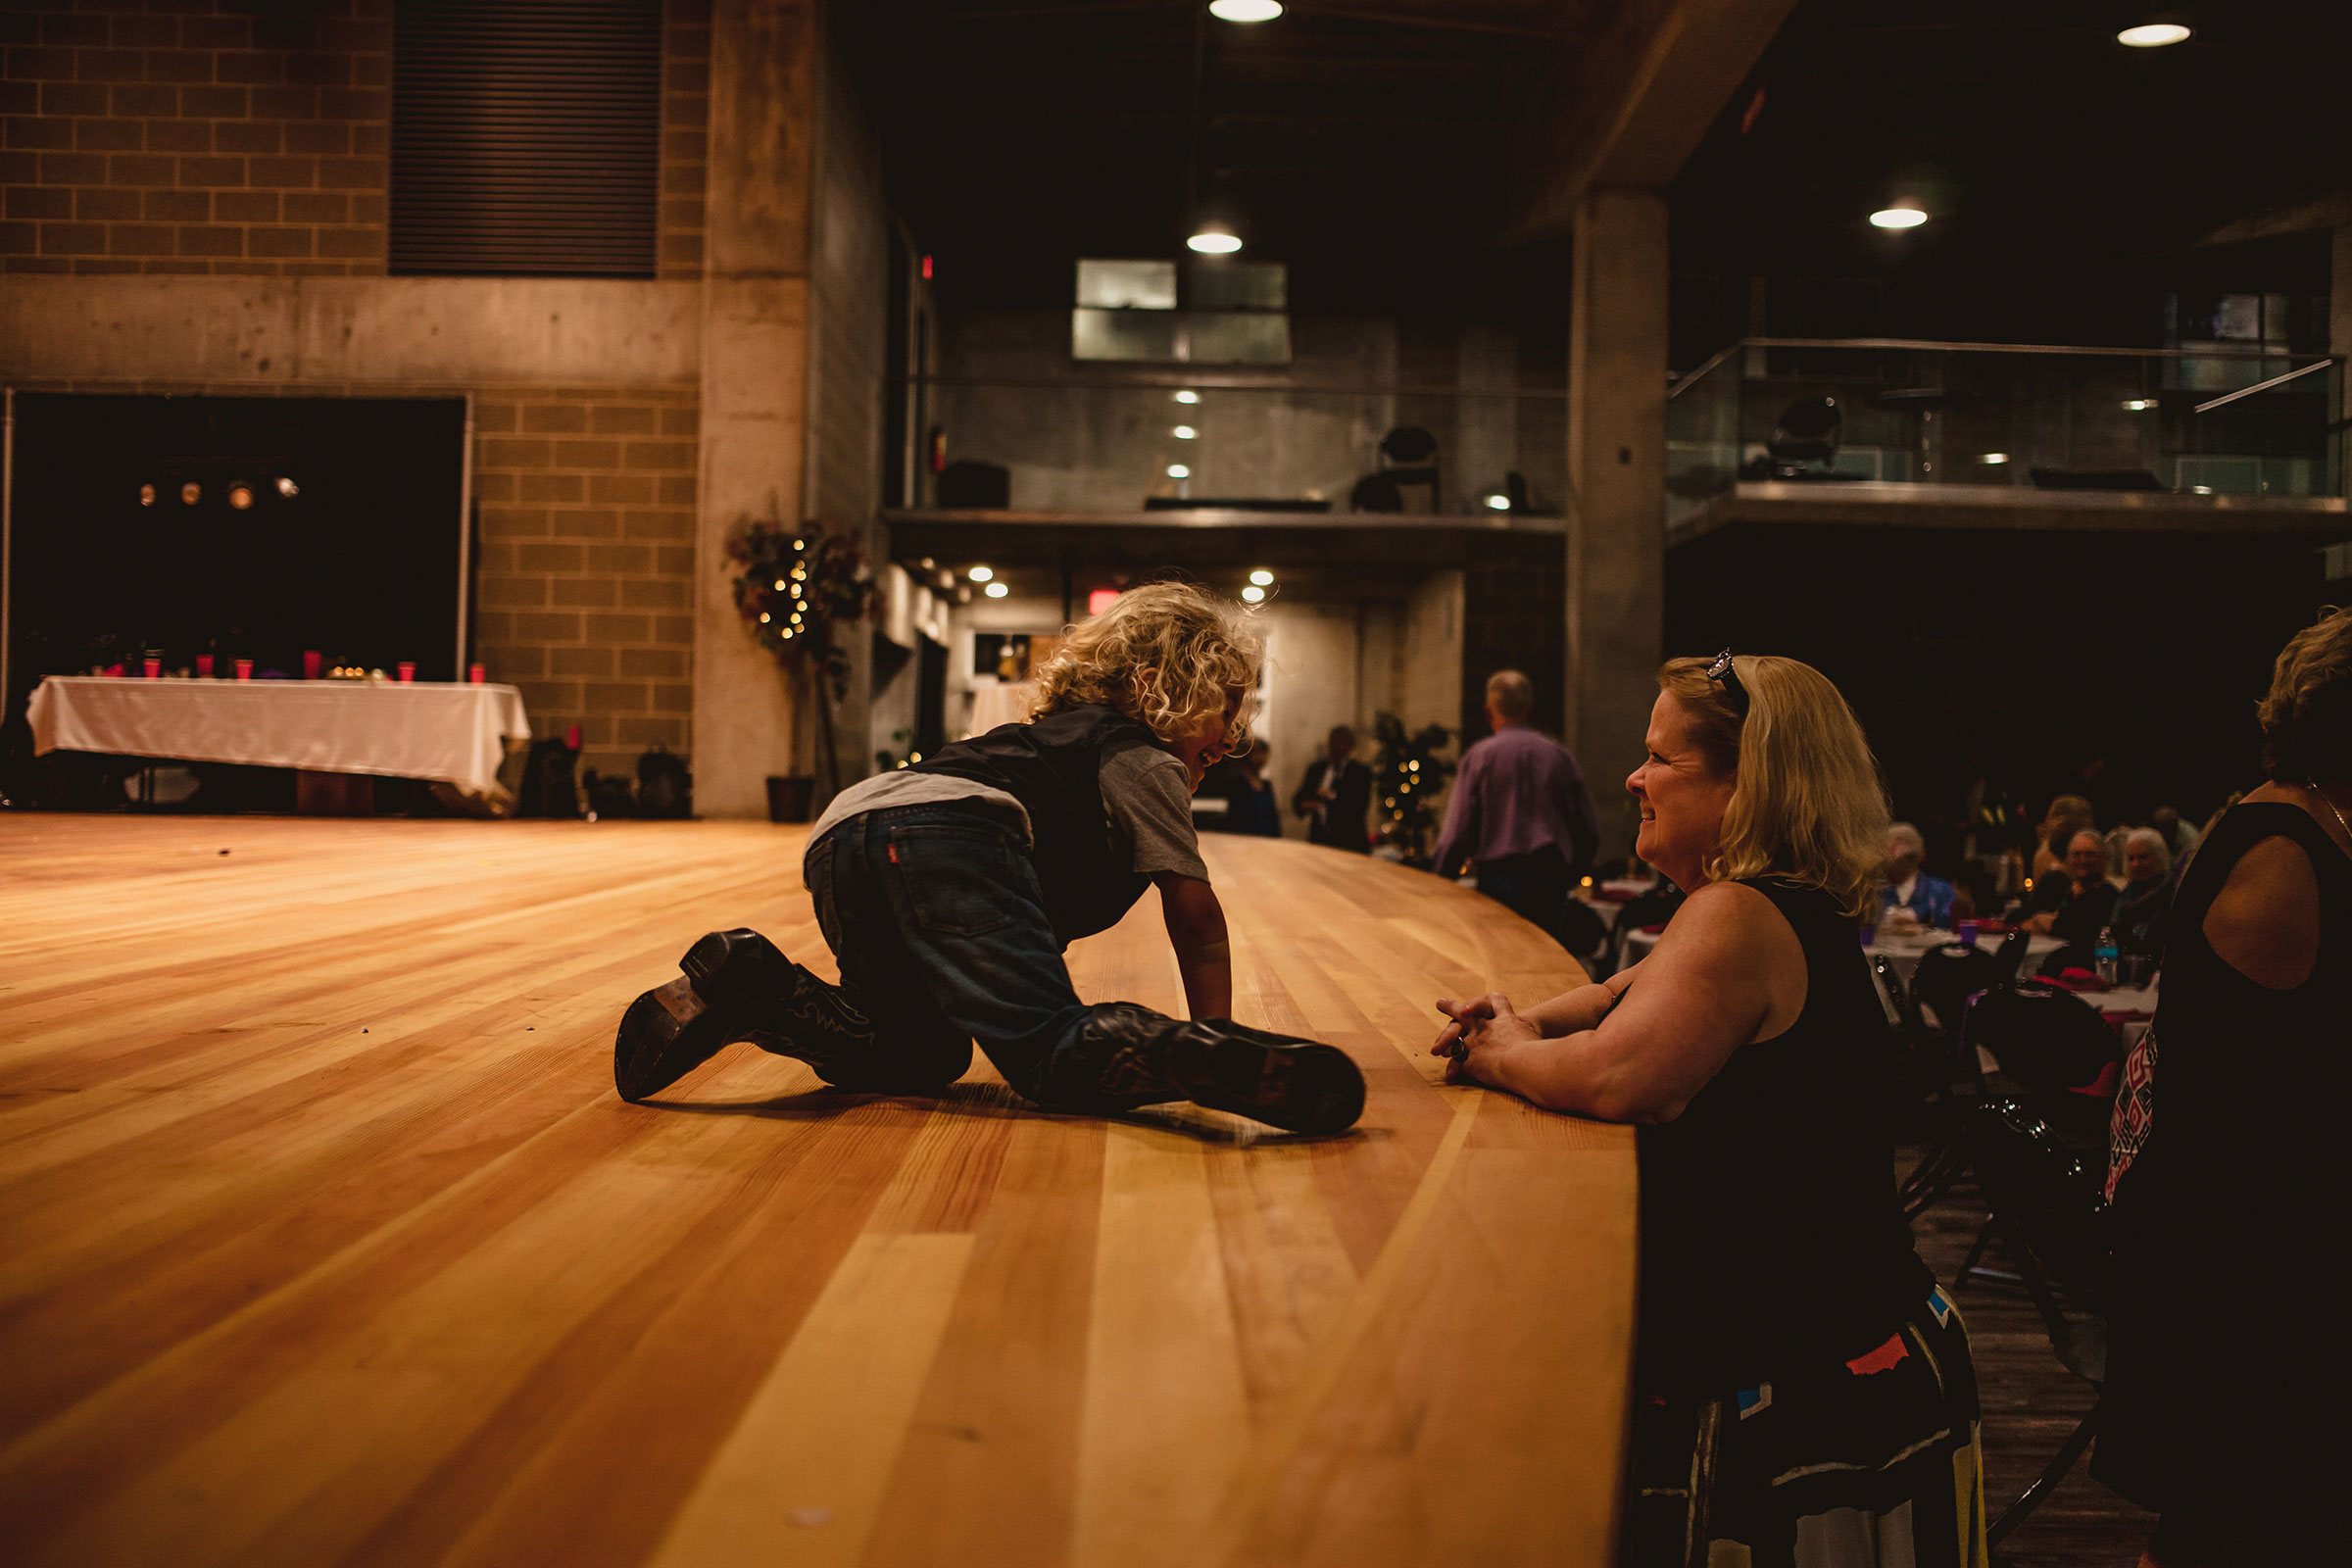 boy-playing-on-stage-talking-to-mother-at-reception-pella-plaza-desmoines-iowa-raelyn-ramey-photography.jpg